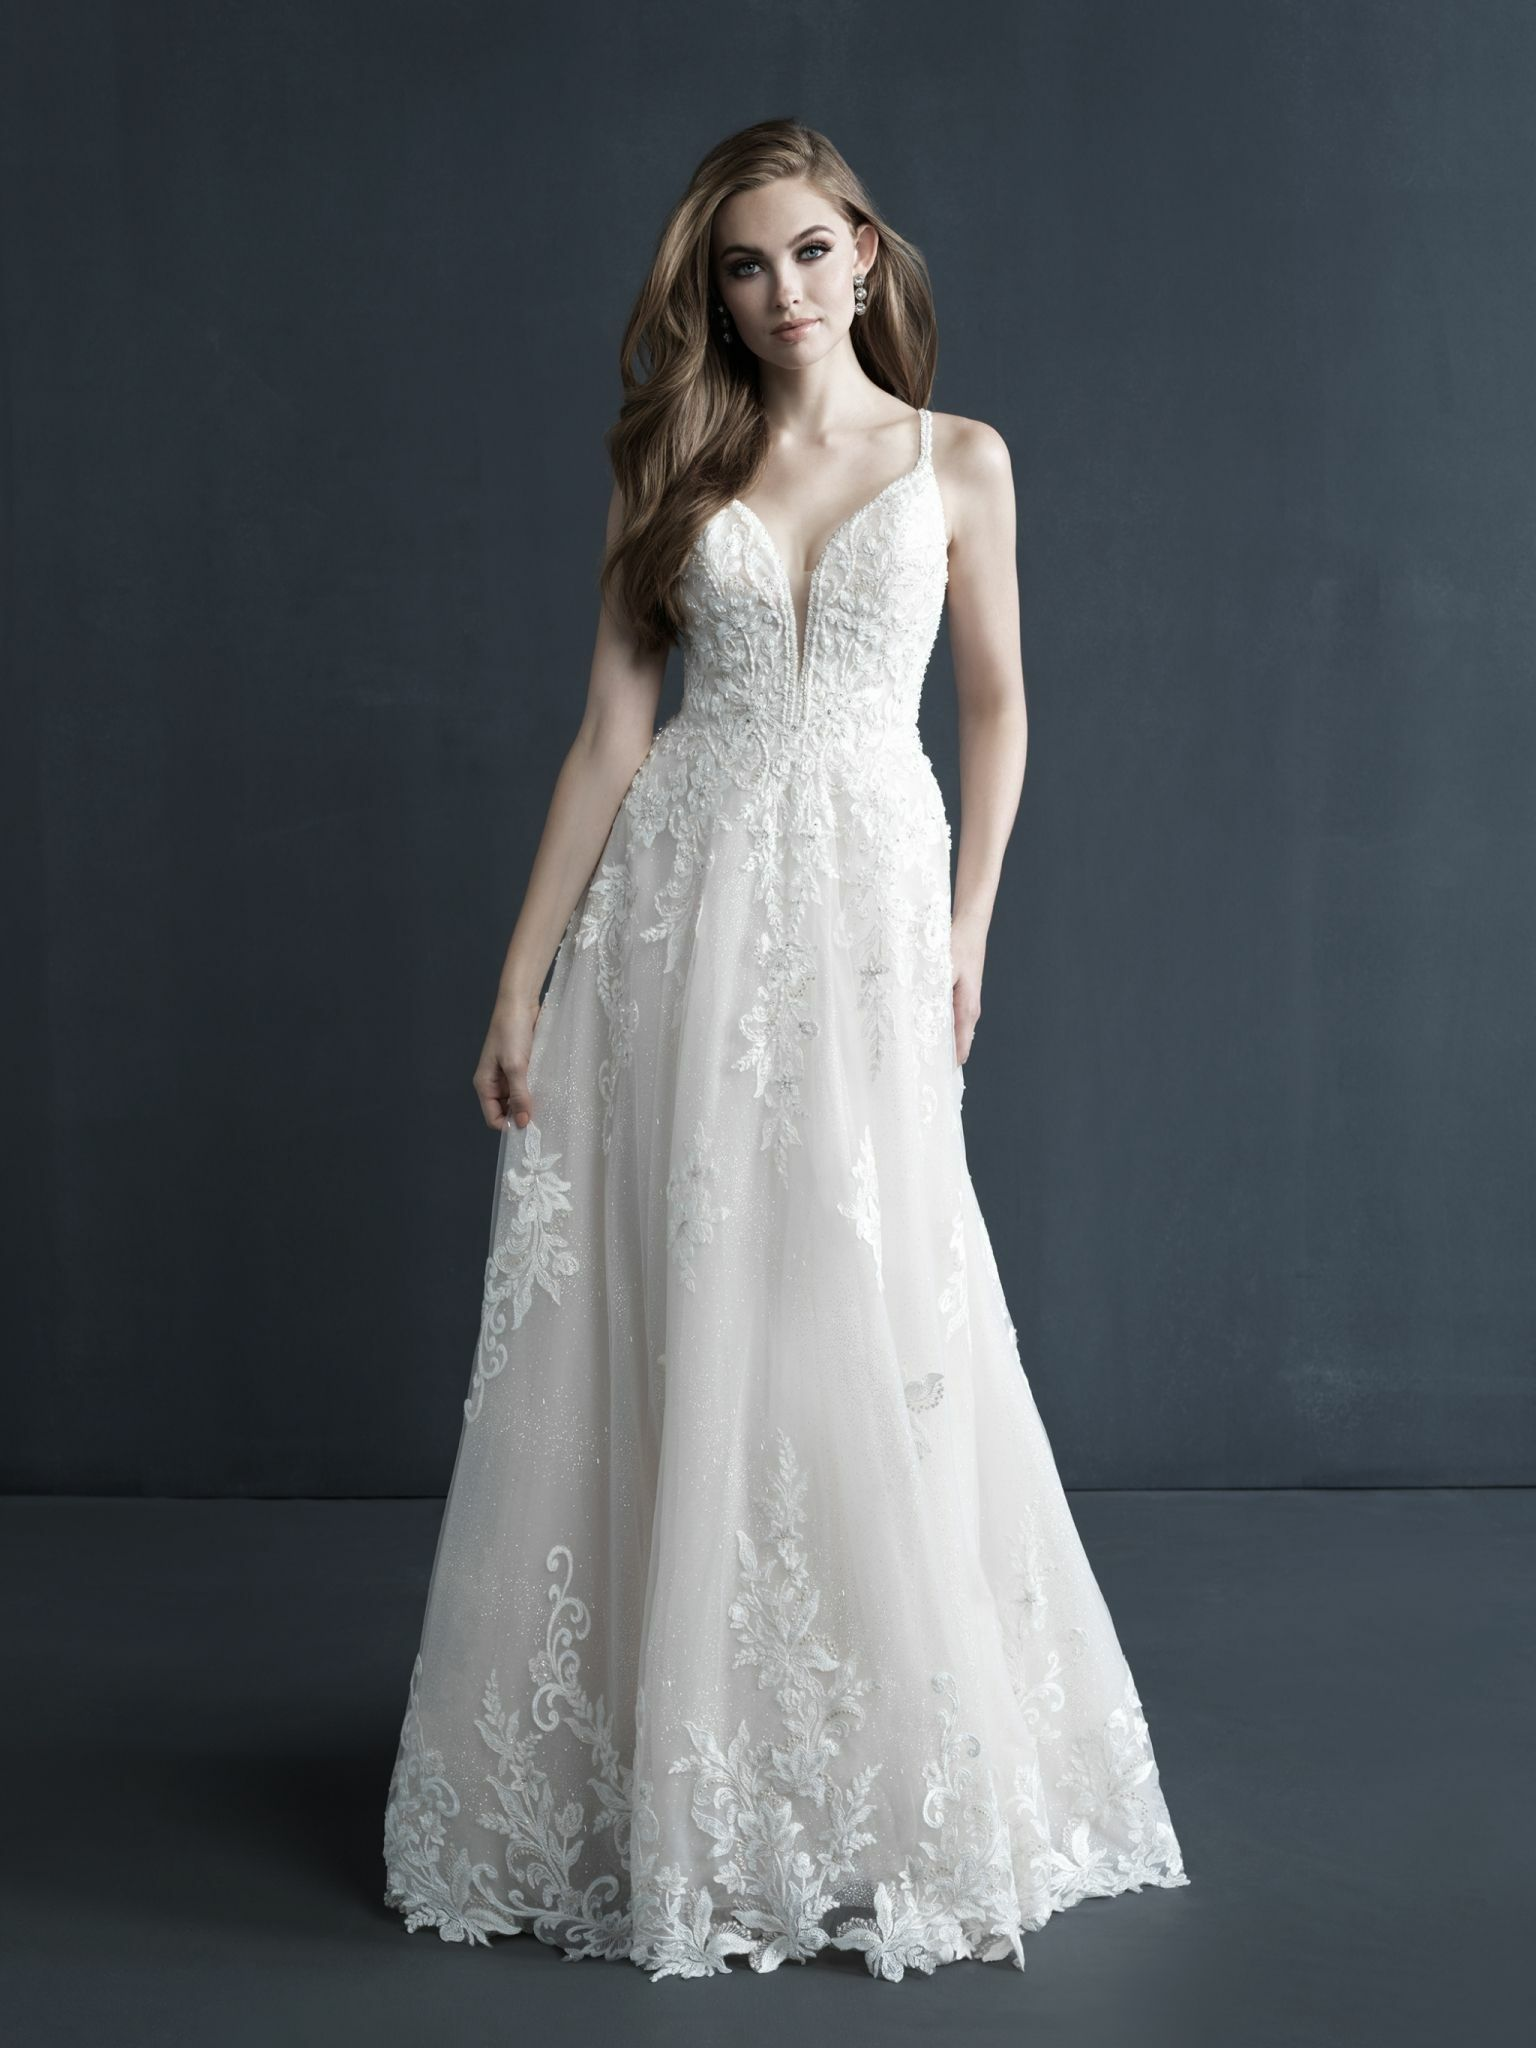 Twinkling beadwork sparkles across the lace appliques of this A-line gown.